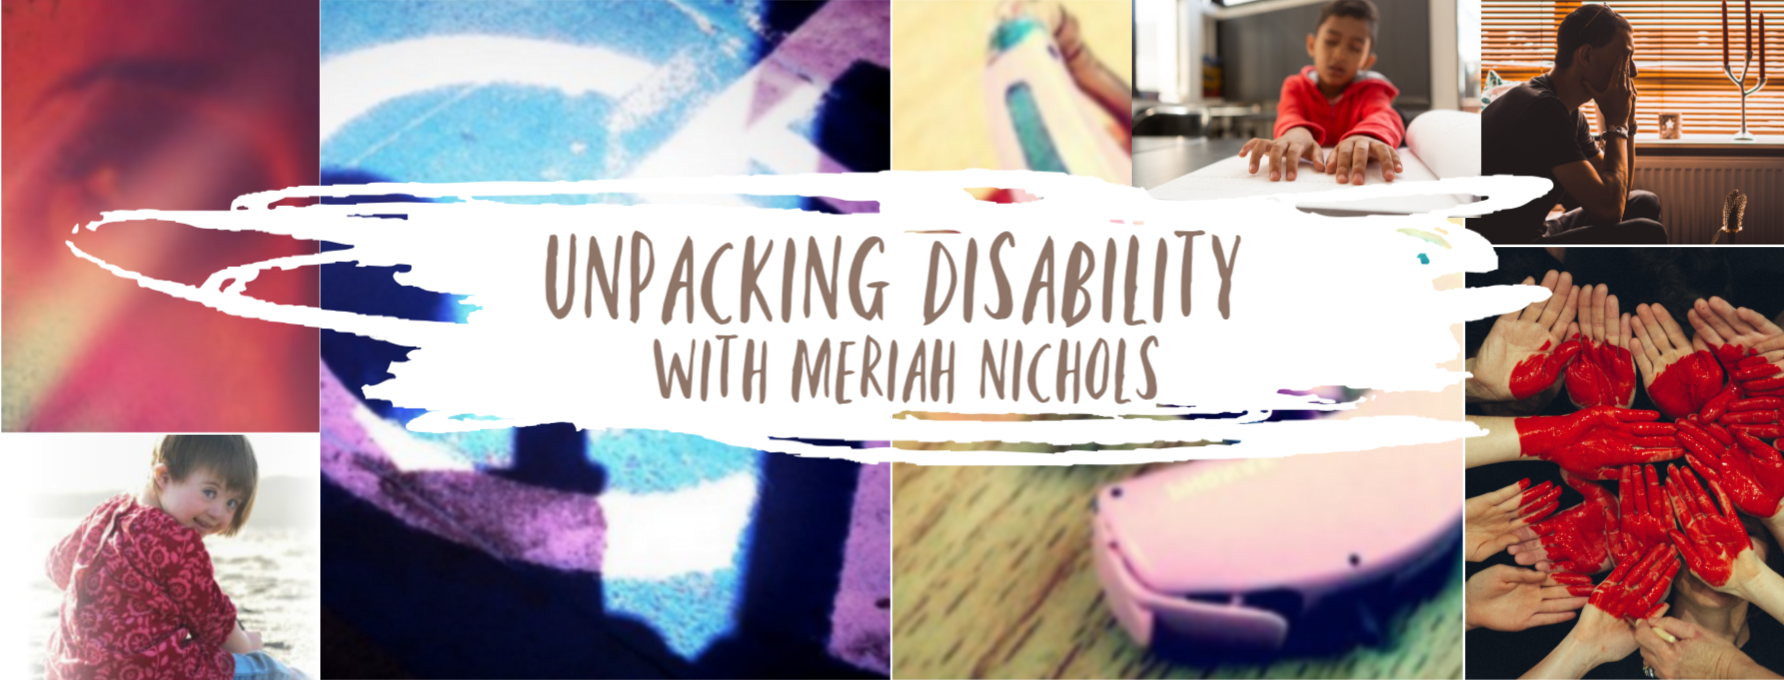 Meriah Nichols: Unpacking Disability